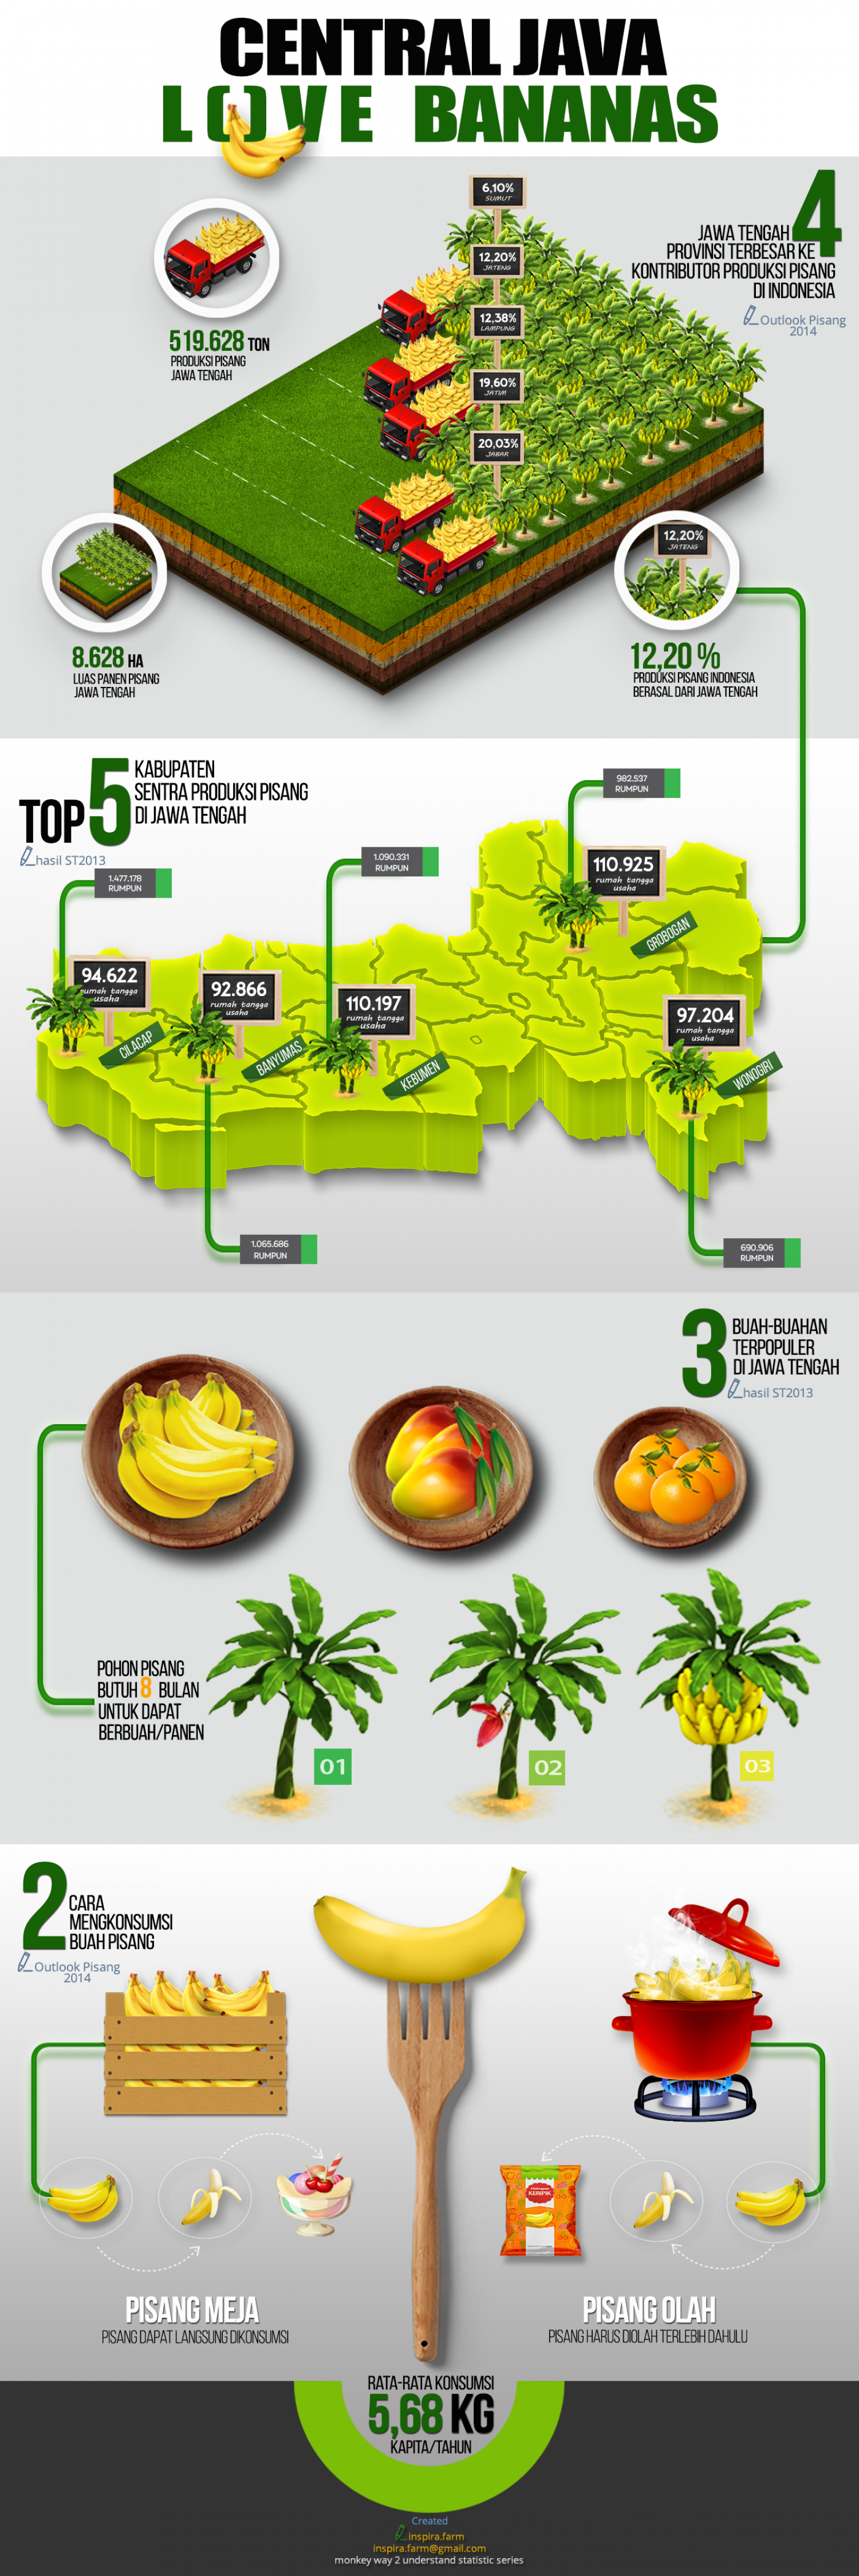 CENTRAL JAVA LOVE BANANAS Infographic